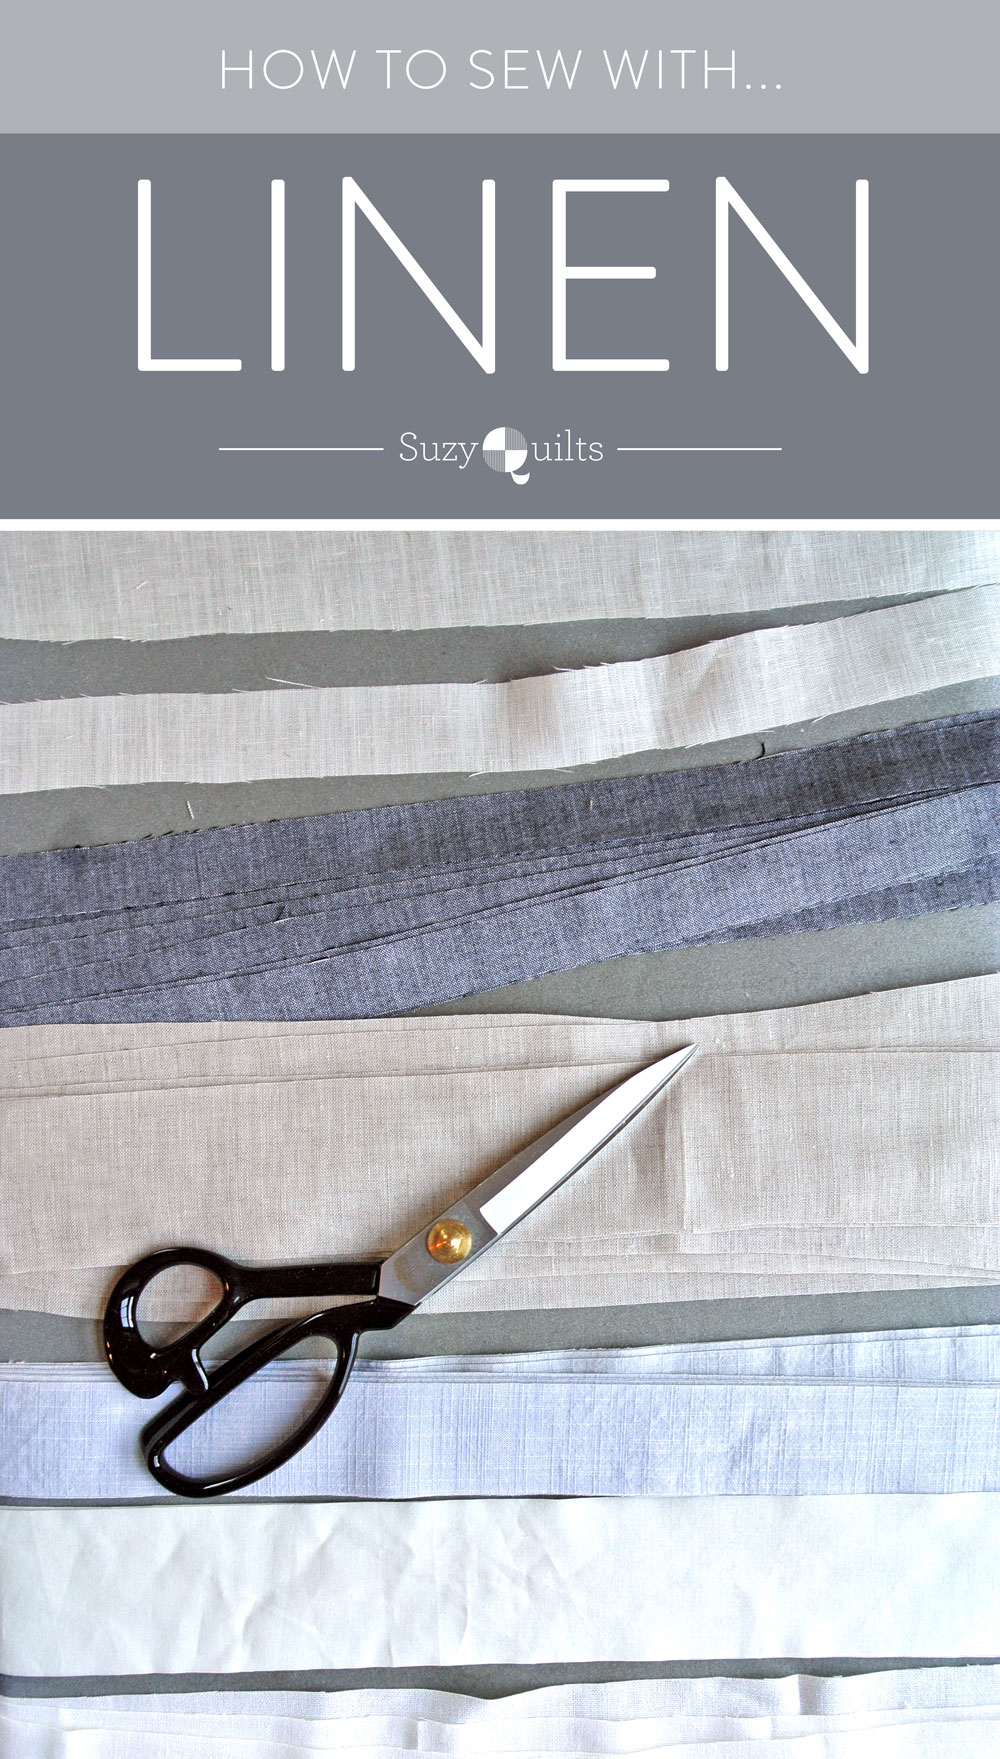 sew-with-linen